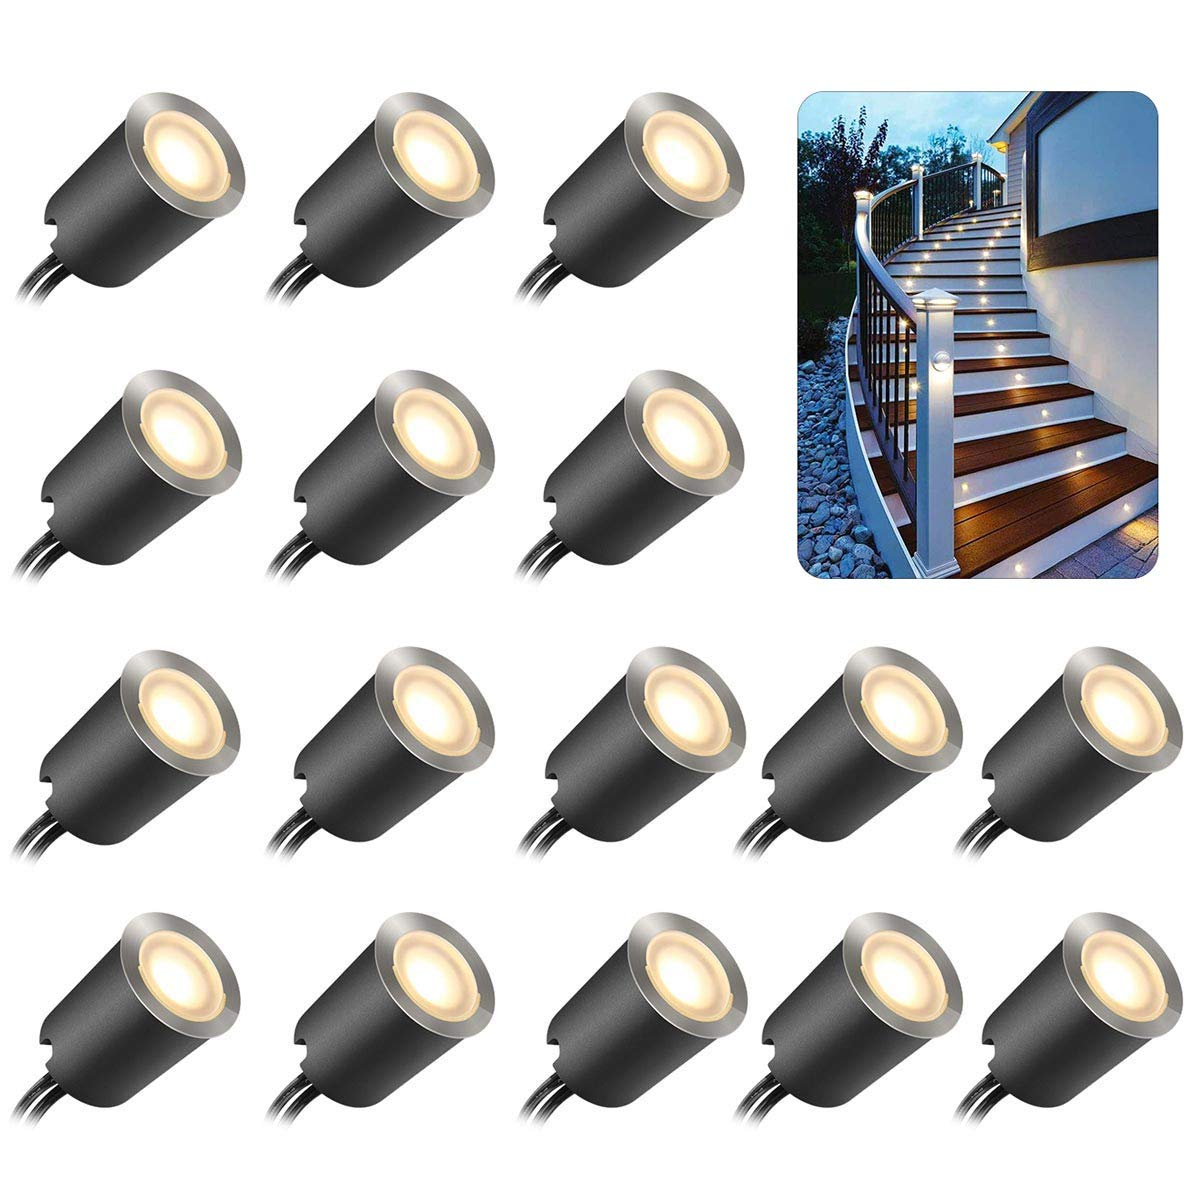 Recessed LED Deck Light Kits with Protecting Shell φ32mm,SMY In Ground Outdoor LED Landscape Lighting IP67 Waterproof,12V Low Voltage for Garden,Yard Steps,Stair,Patio,Floor,Kitchen Decoration by SMY Lighting